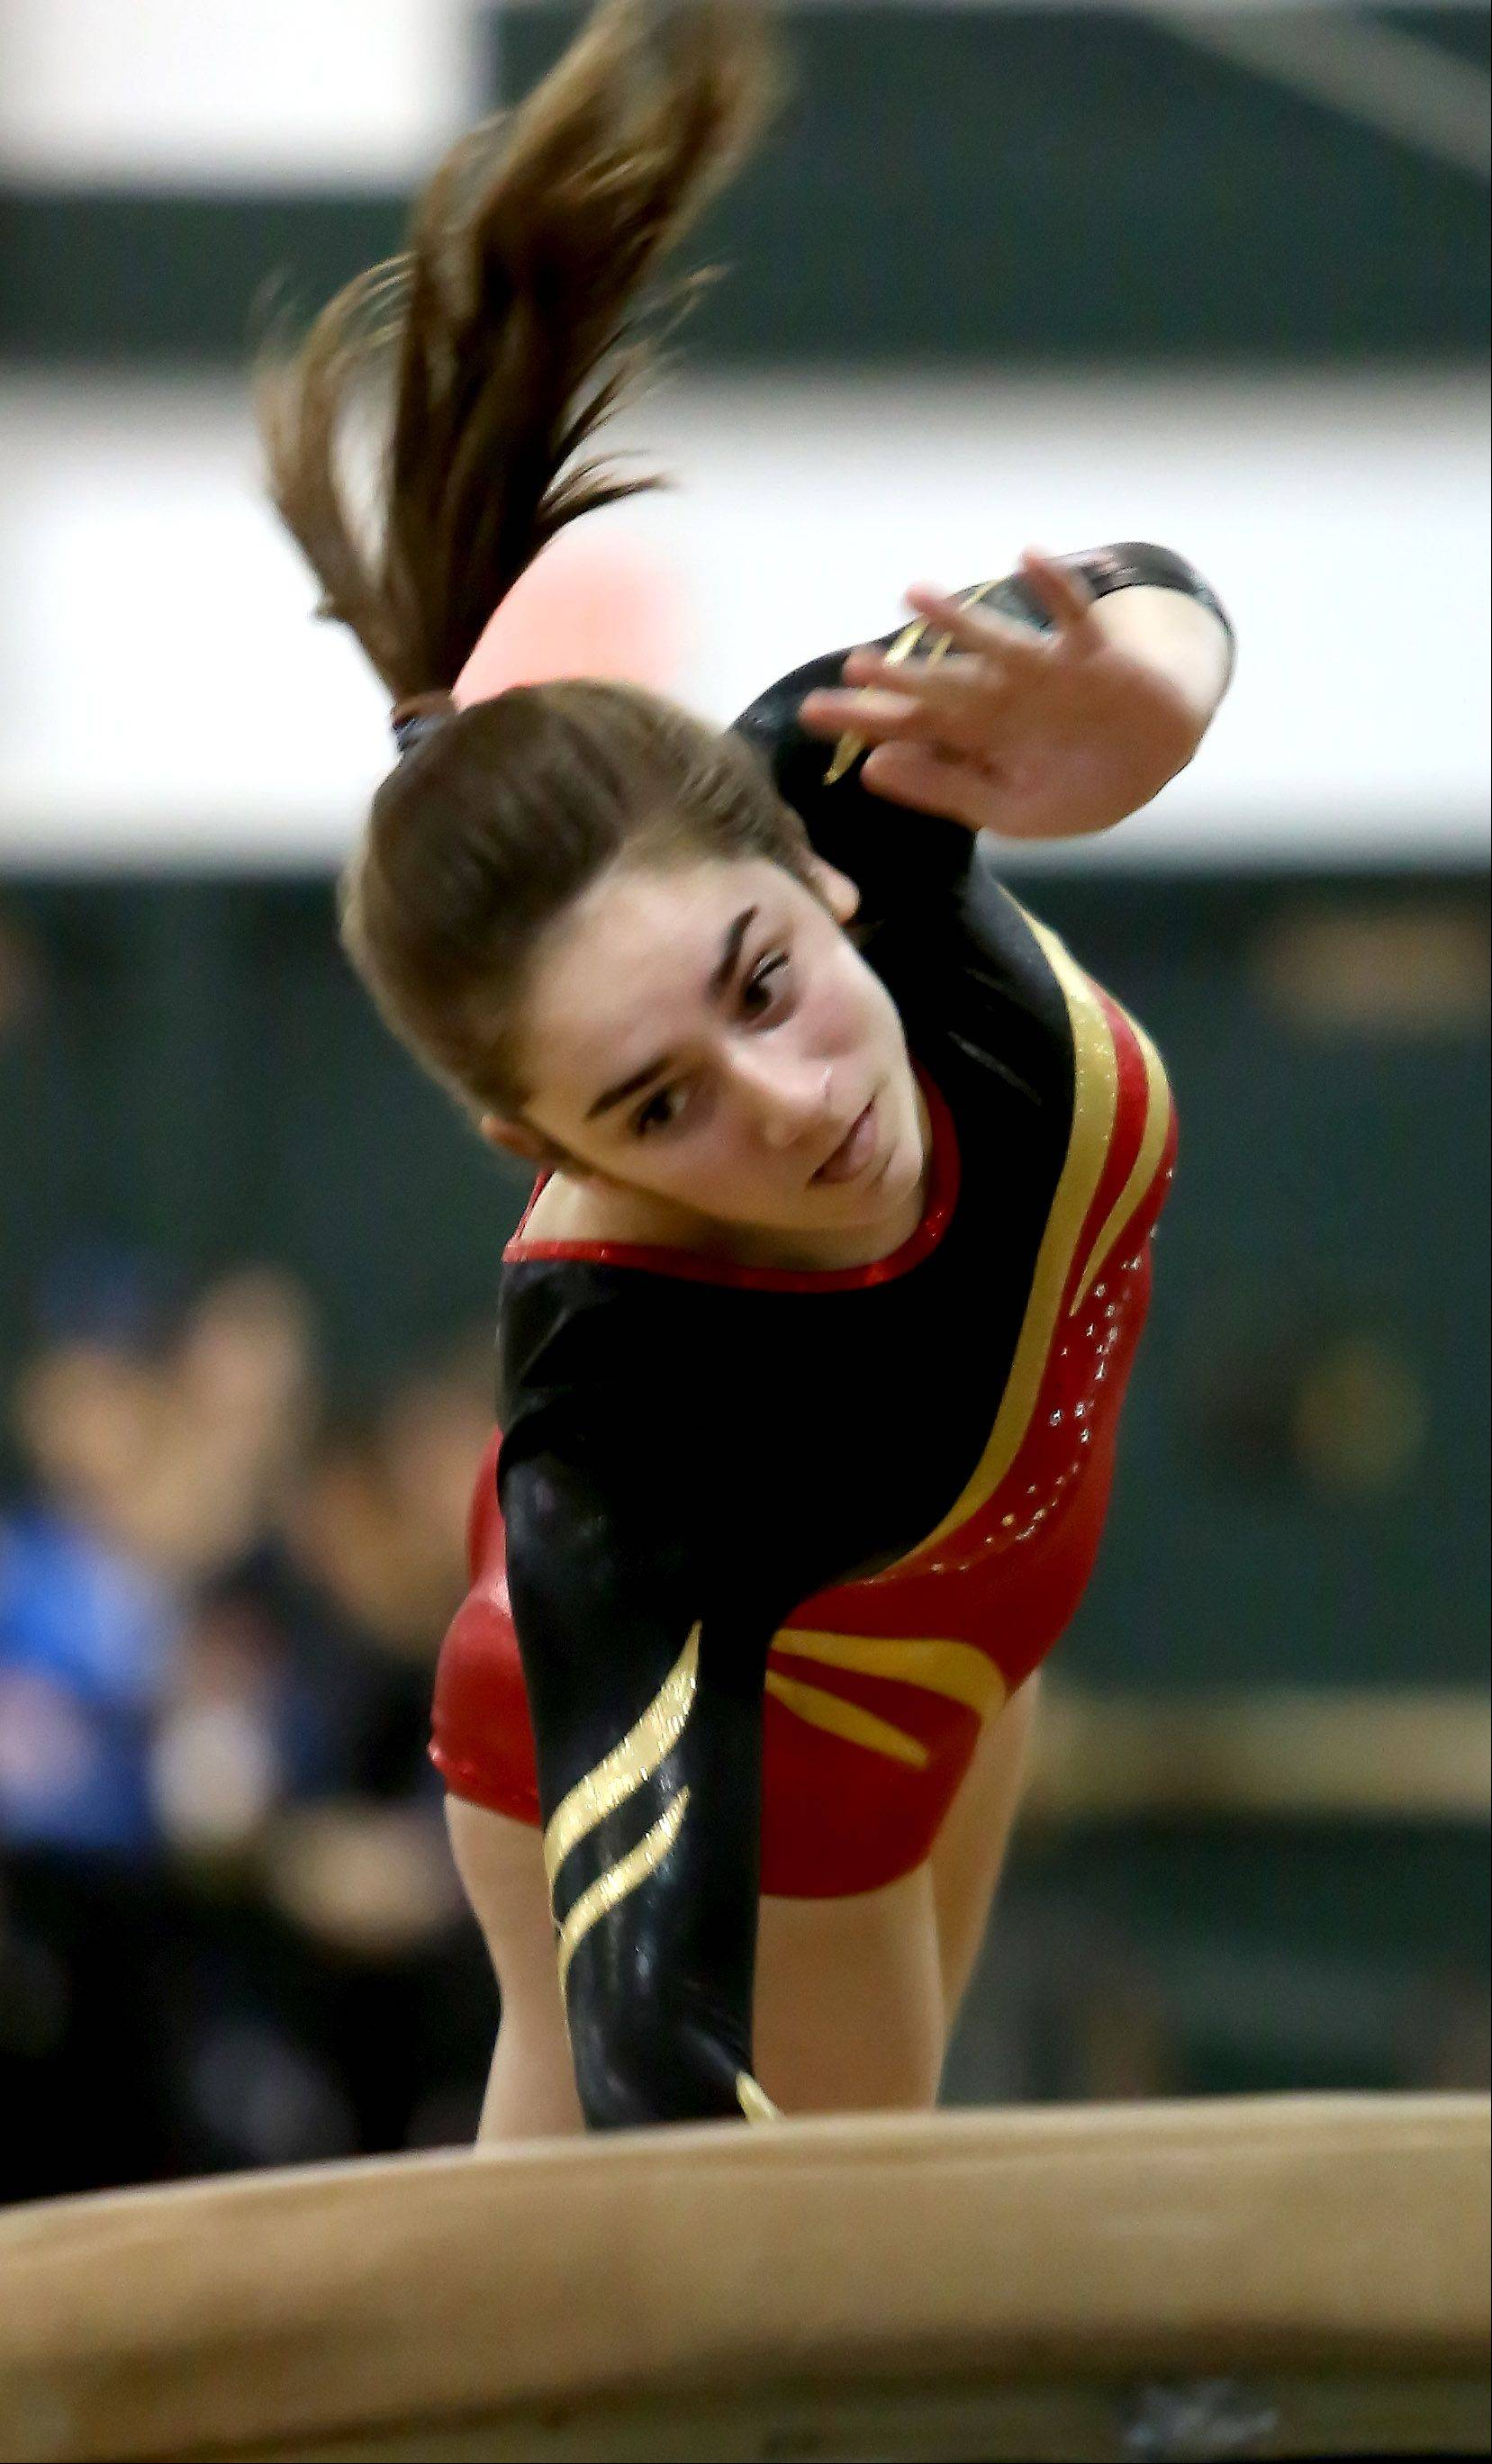 Megan McGee of Batavia performs on the vault during gymnastics sectional at Glenbard West on Tuesday in Glen Ellyn.